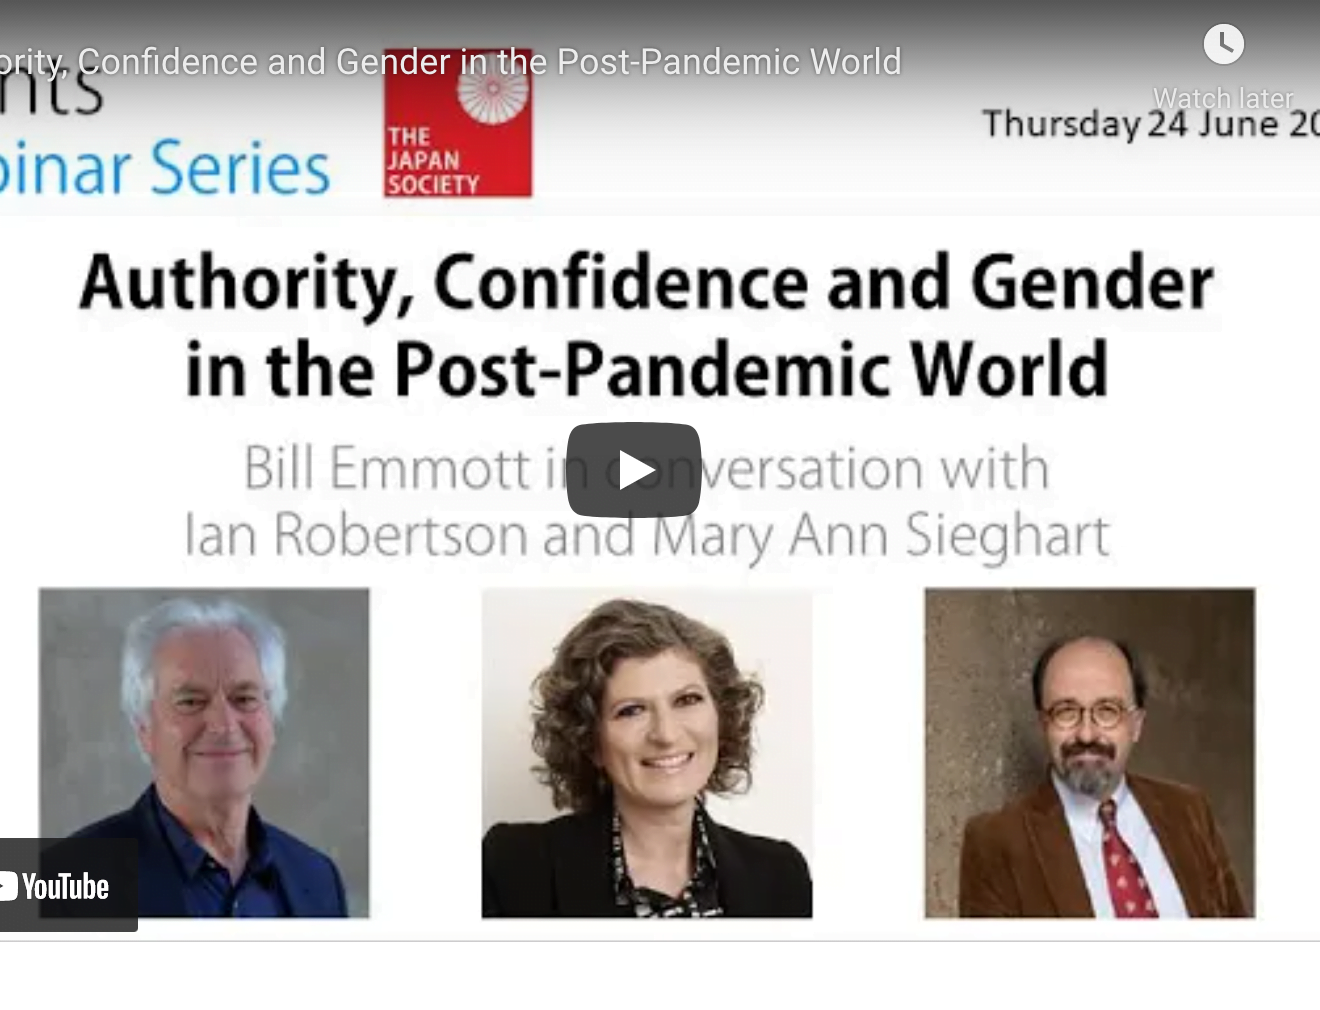 Authority, Confidence and Gender